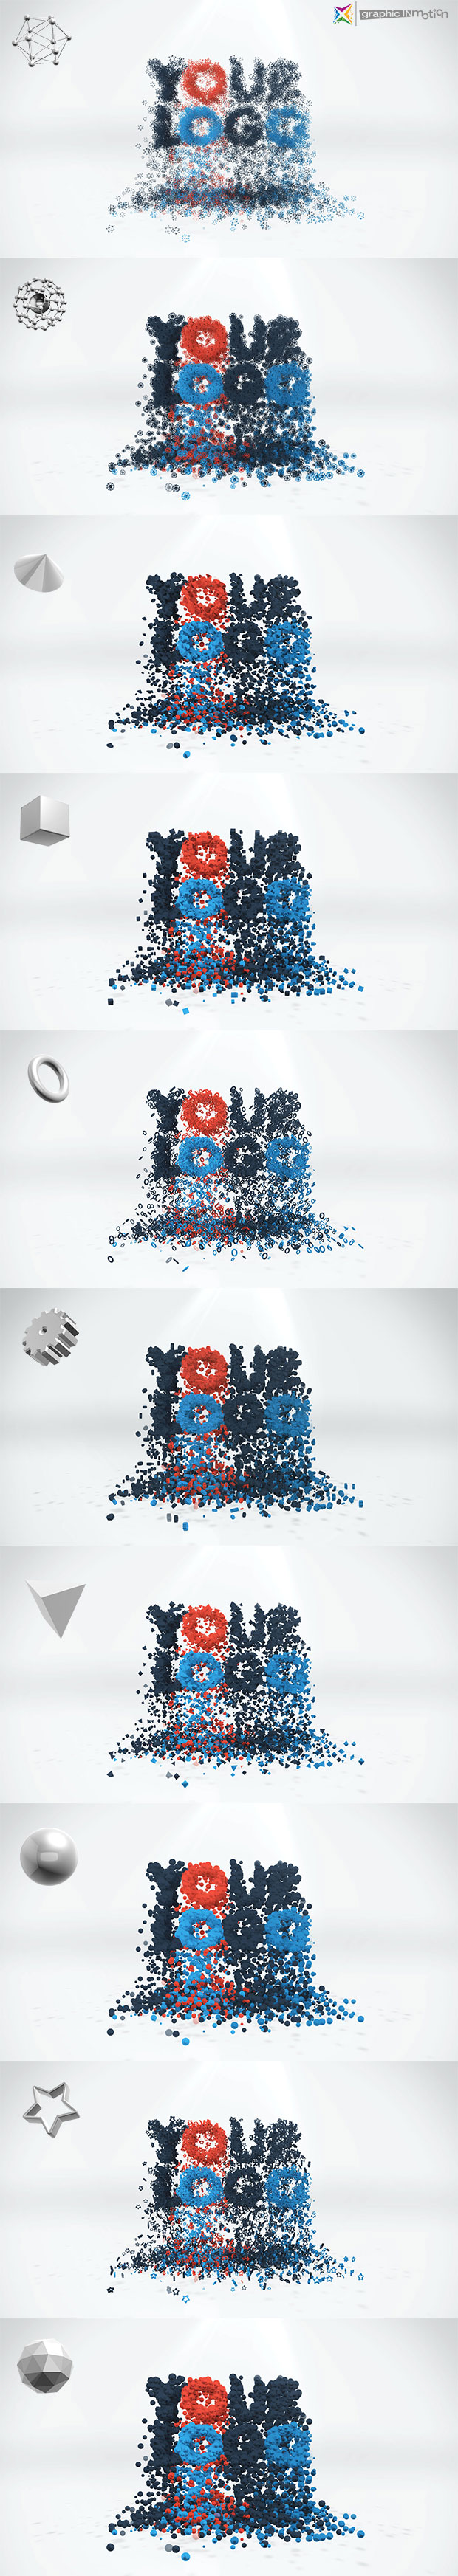 3D Particles Logo Build & Break - 1